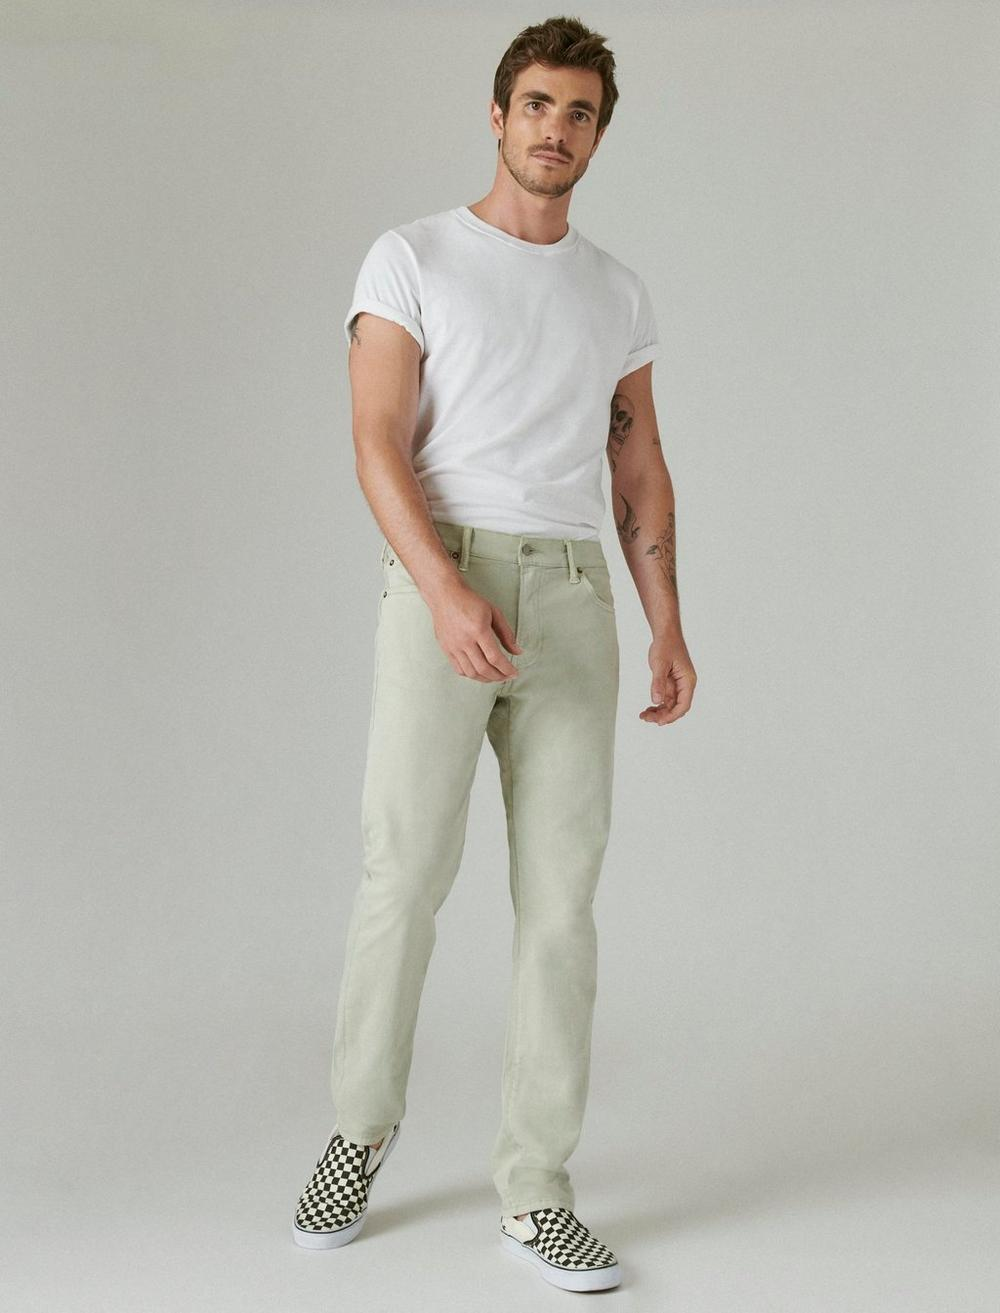 410 ATHLETIC STRAIGHT SATEEN STRETCH JEAN, image 1